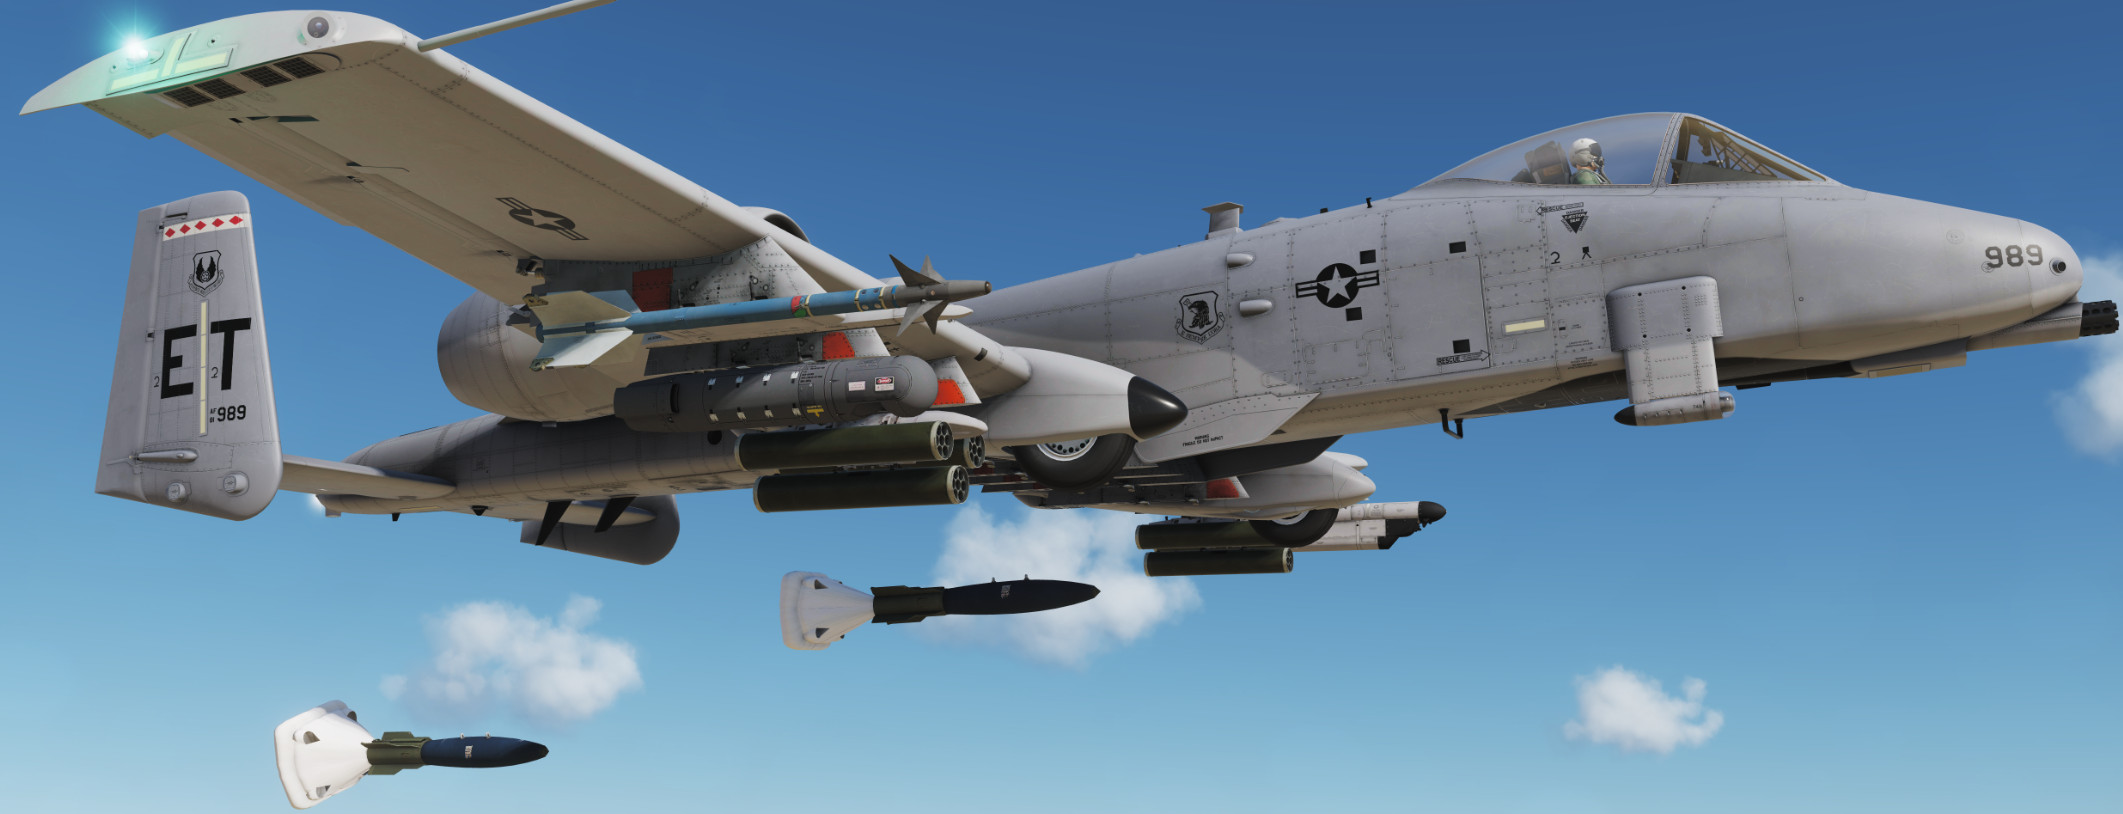 A-10C. Alcohol based fuel testbed, Eglin AFB 2012.